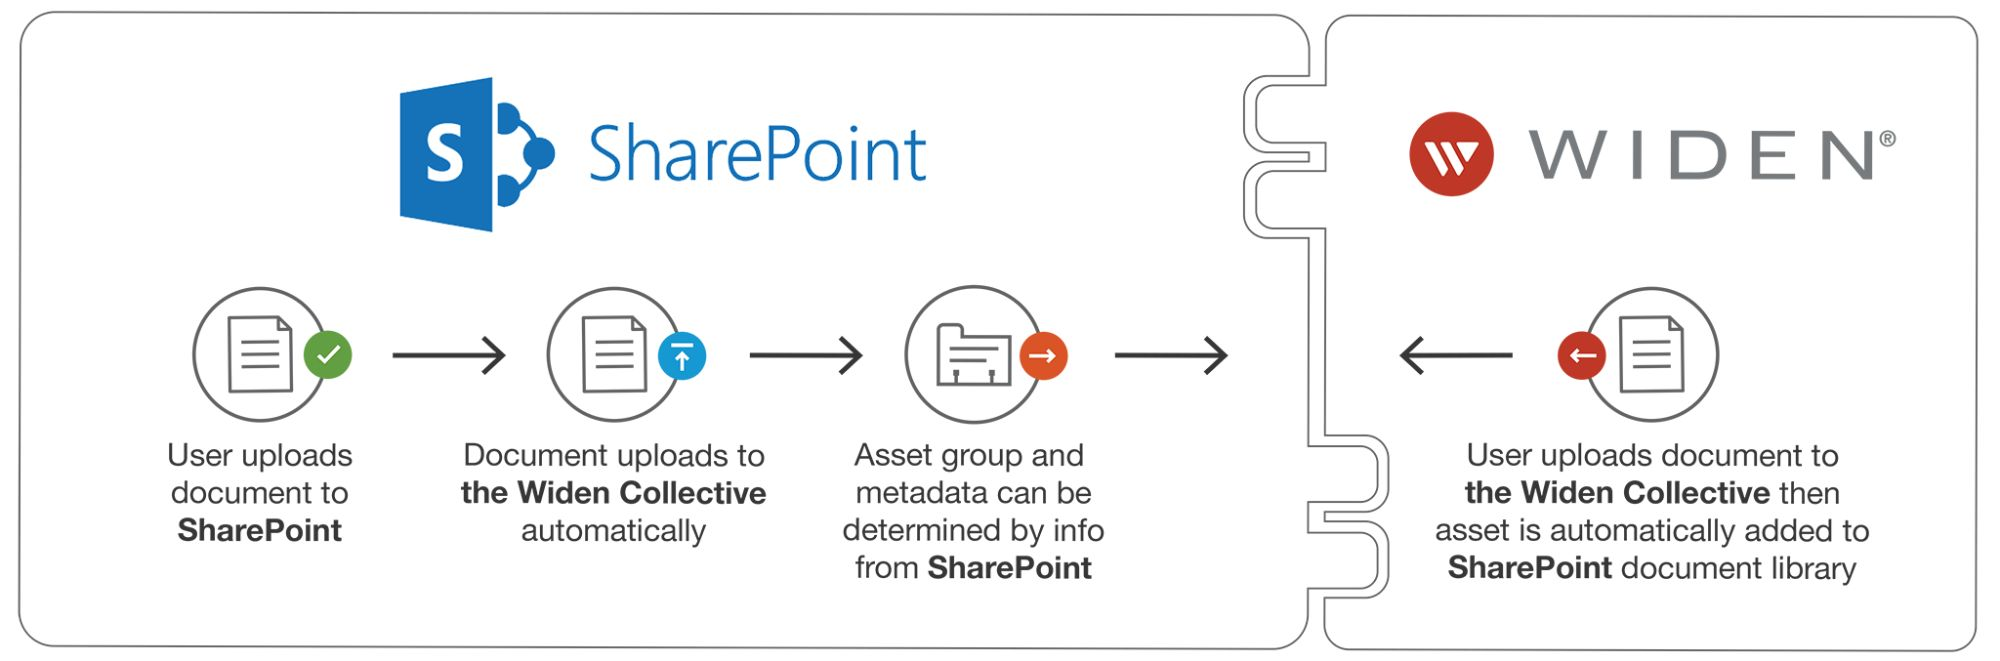 SharePoint integration with the Widen Collective graphic